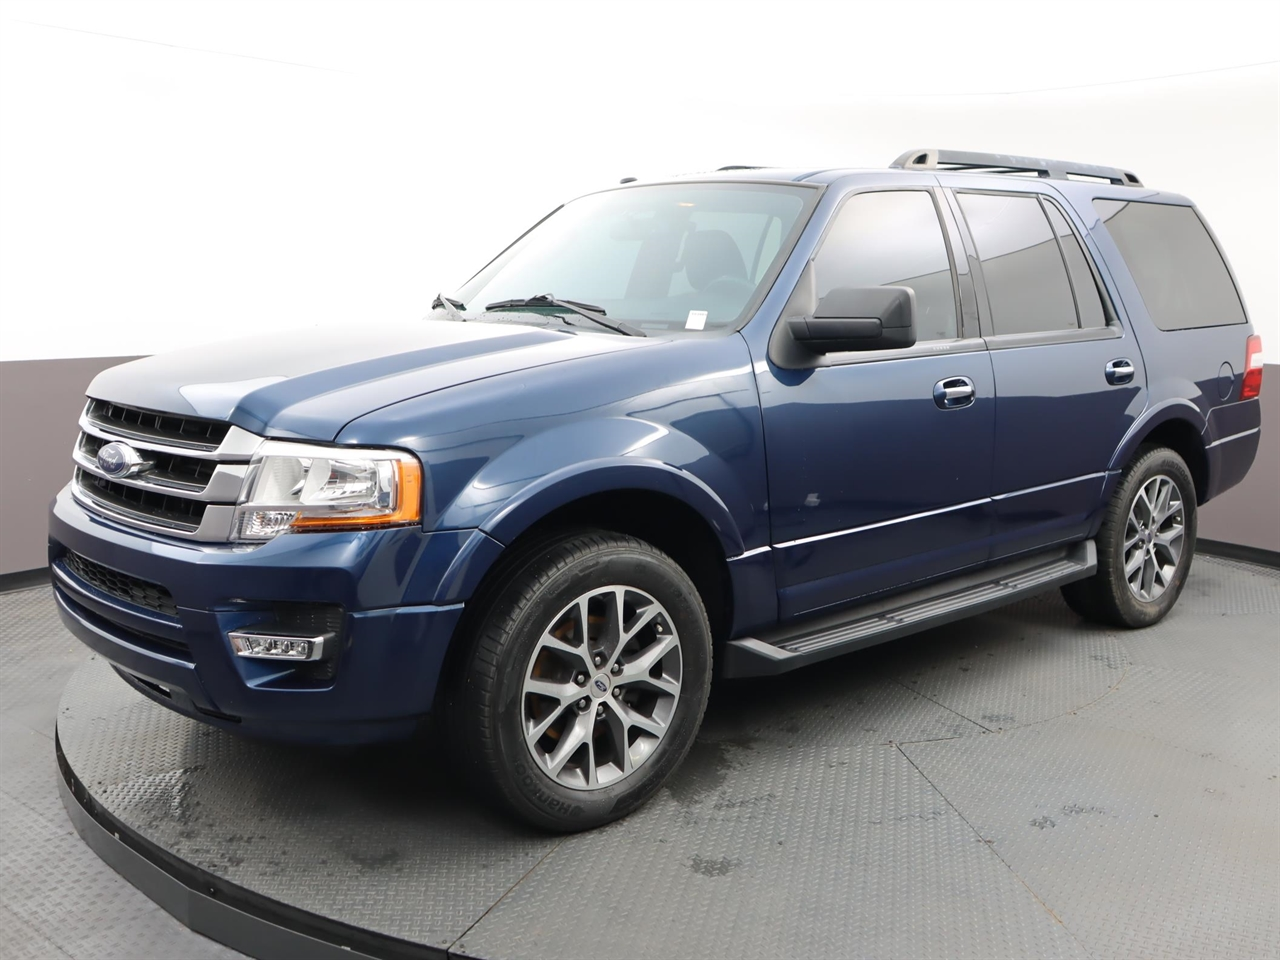 Used FORD EXPEDITION 2017 MARGATE XLT